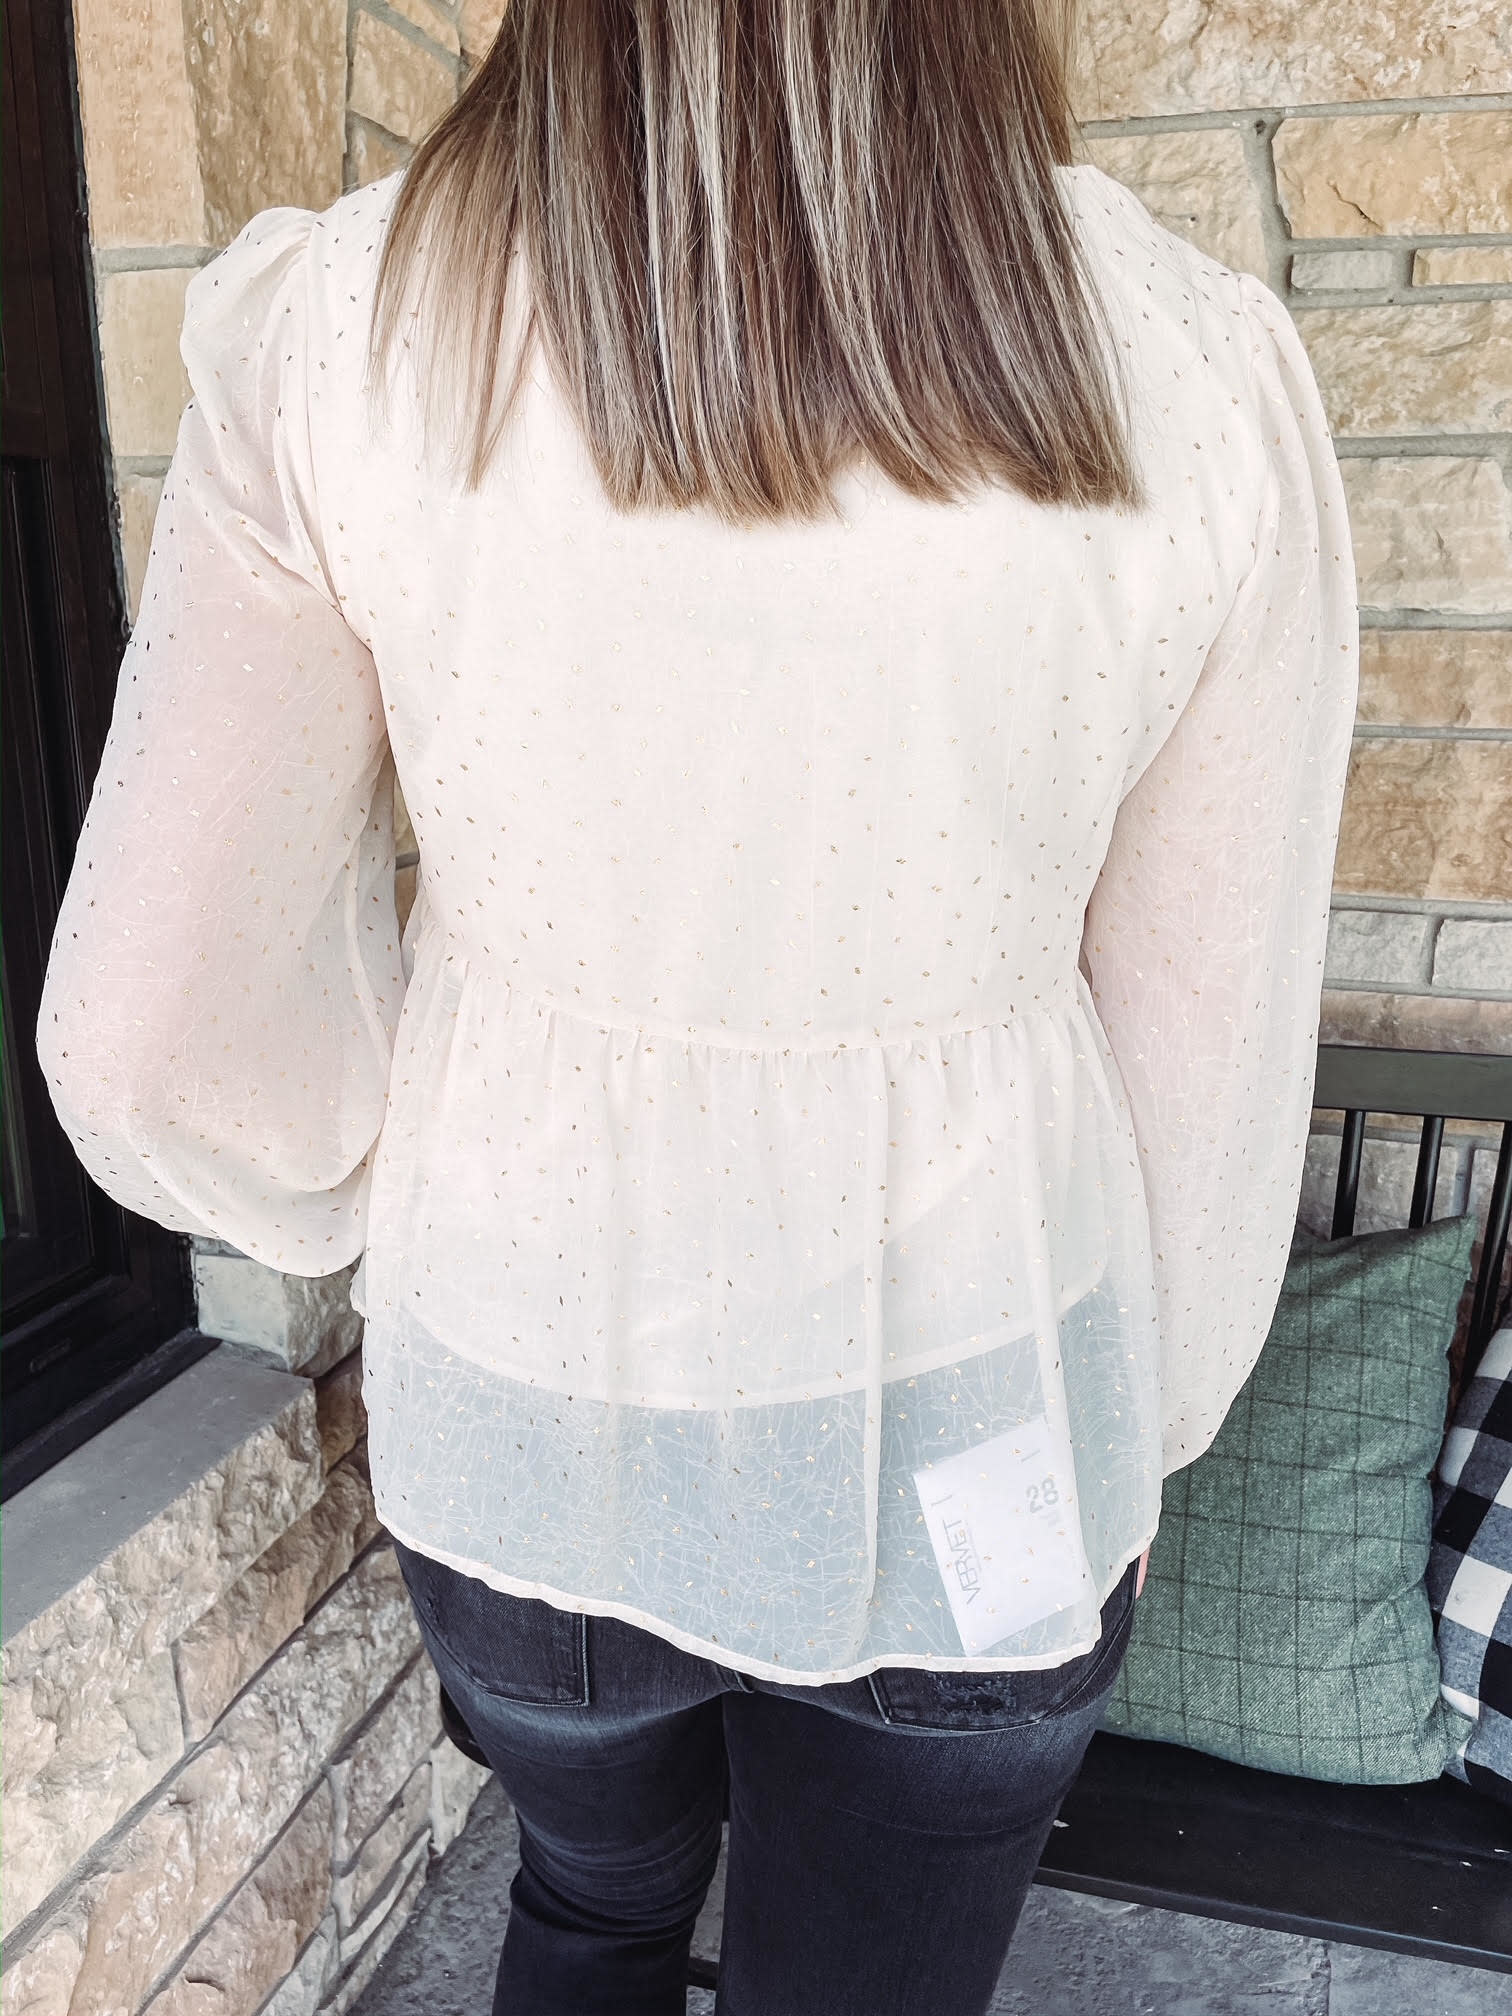 Lia Gold Speckled Sheer Blouse